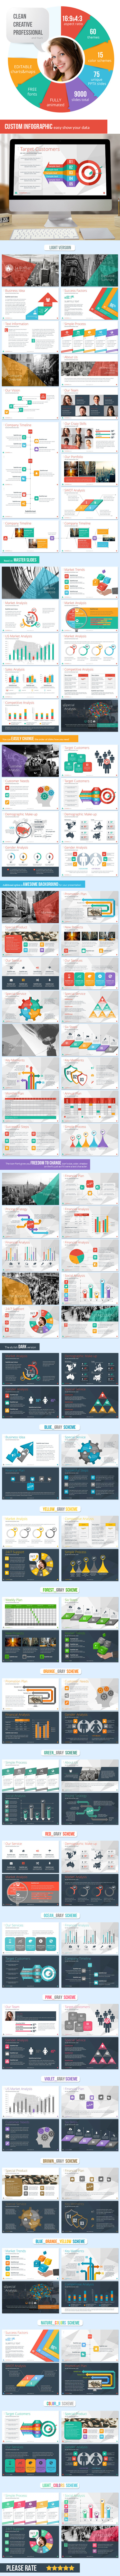 Business Plan PowerPoint Presentation Template  - Pitch Deck PowerPoint Templates